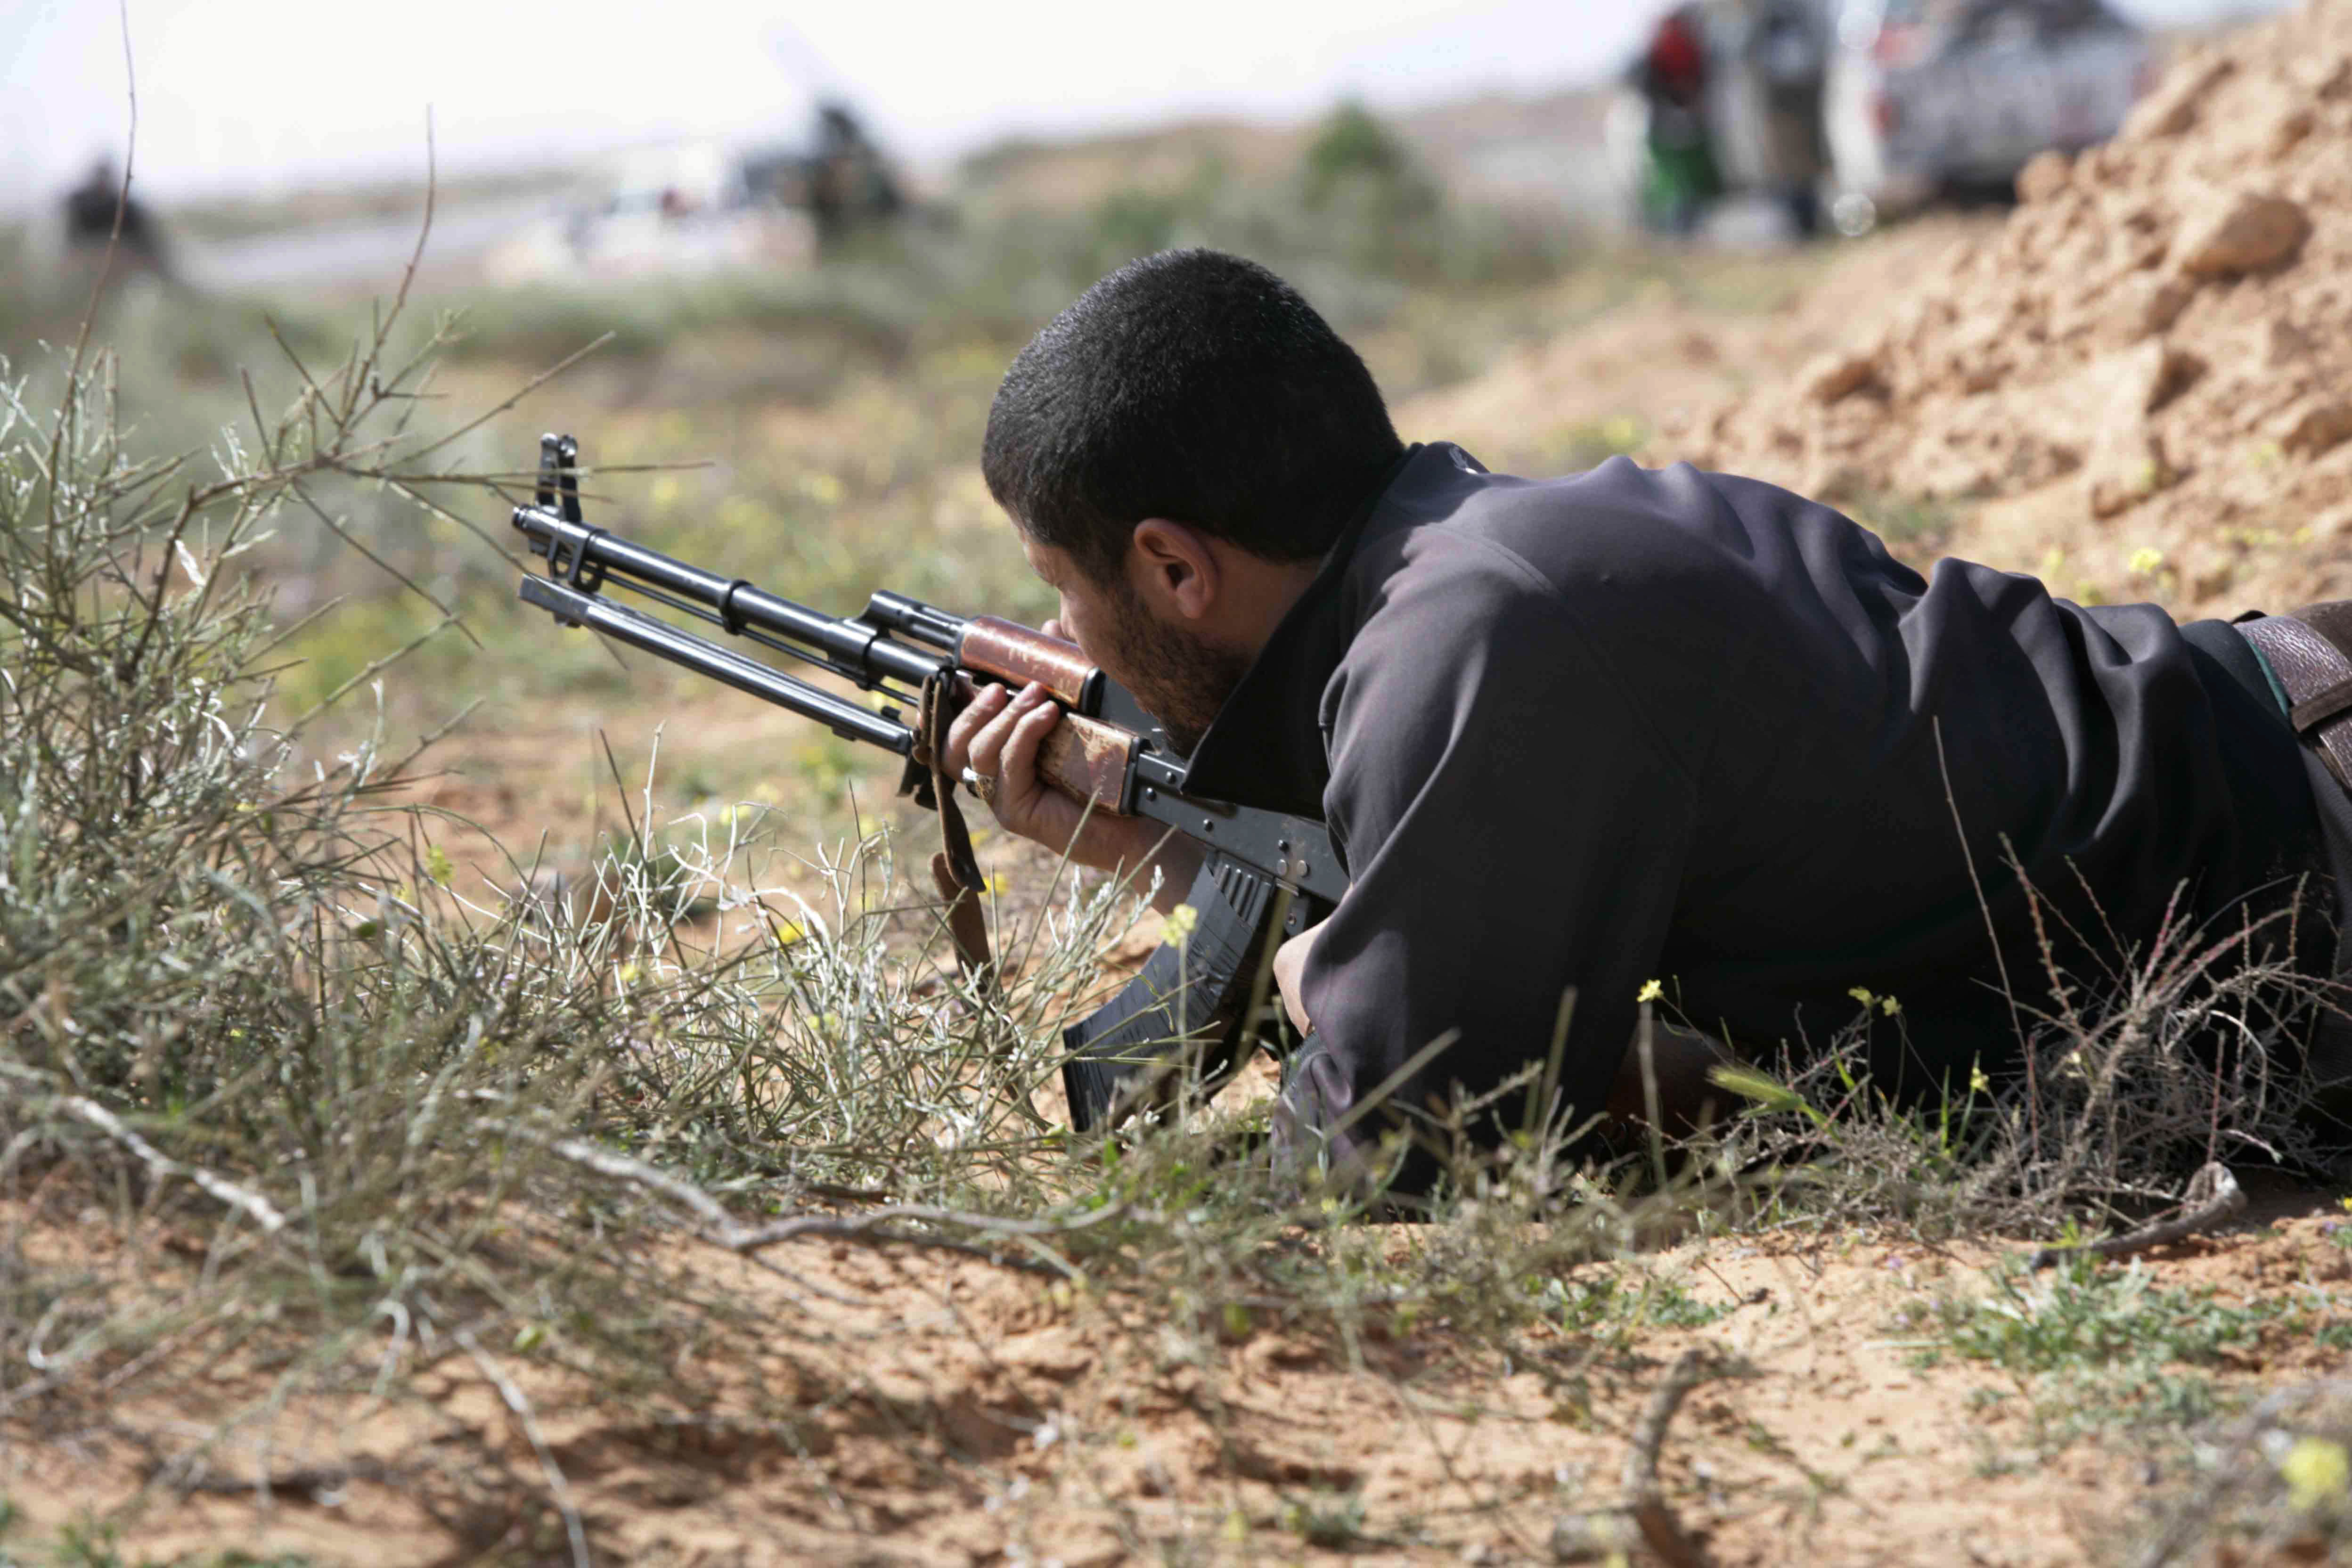 sniper3 1 Is There A Secret Sniper On A One Man Mission Against ISIL?